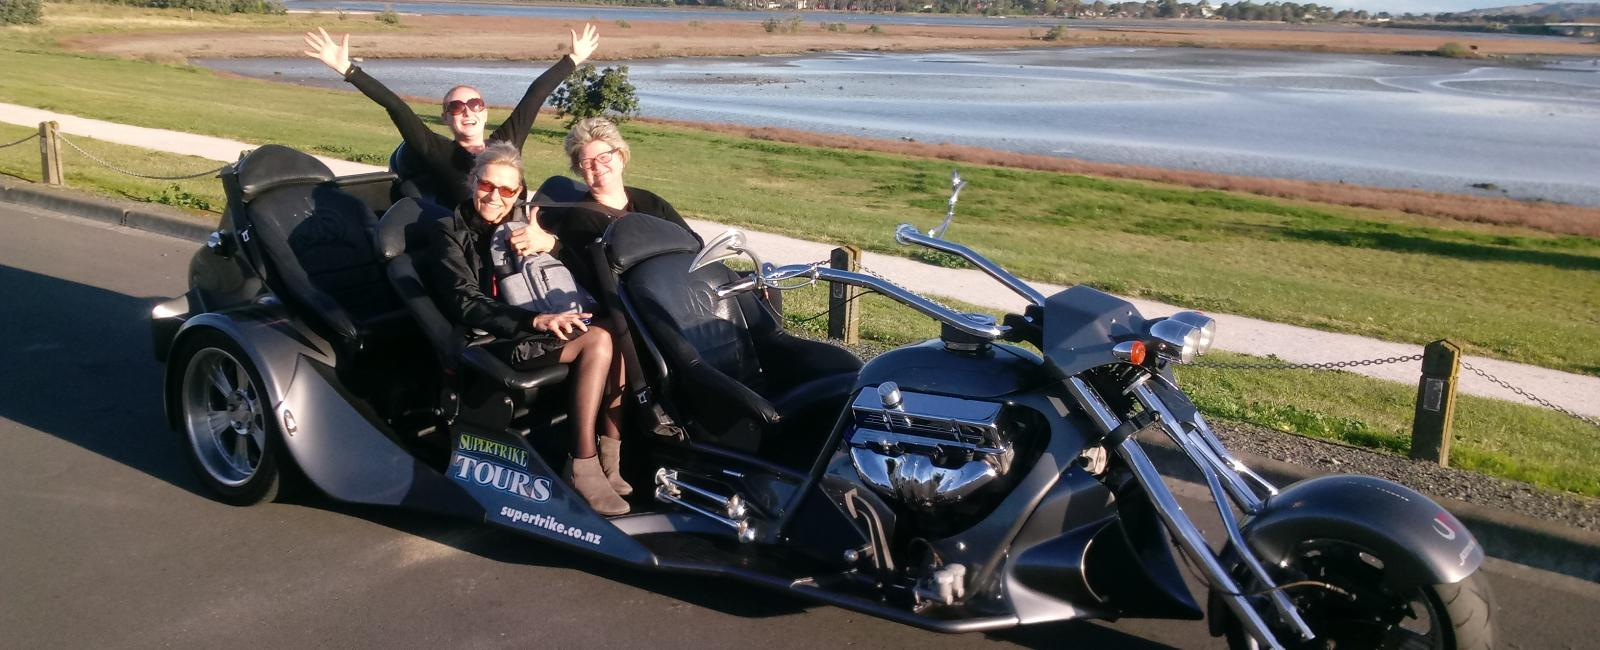 Supertrike Tours & Hire